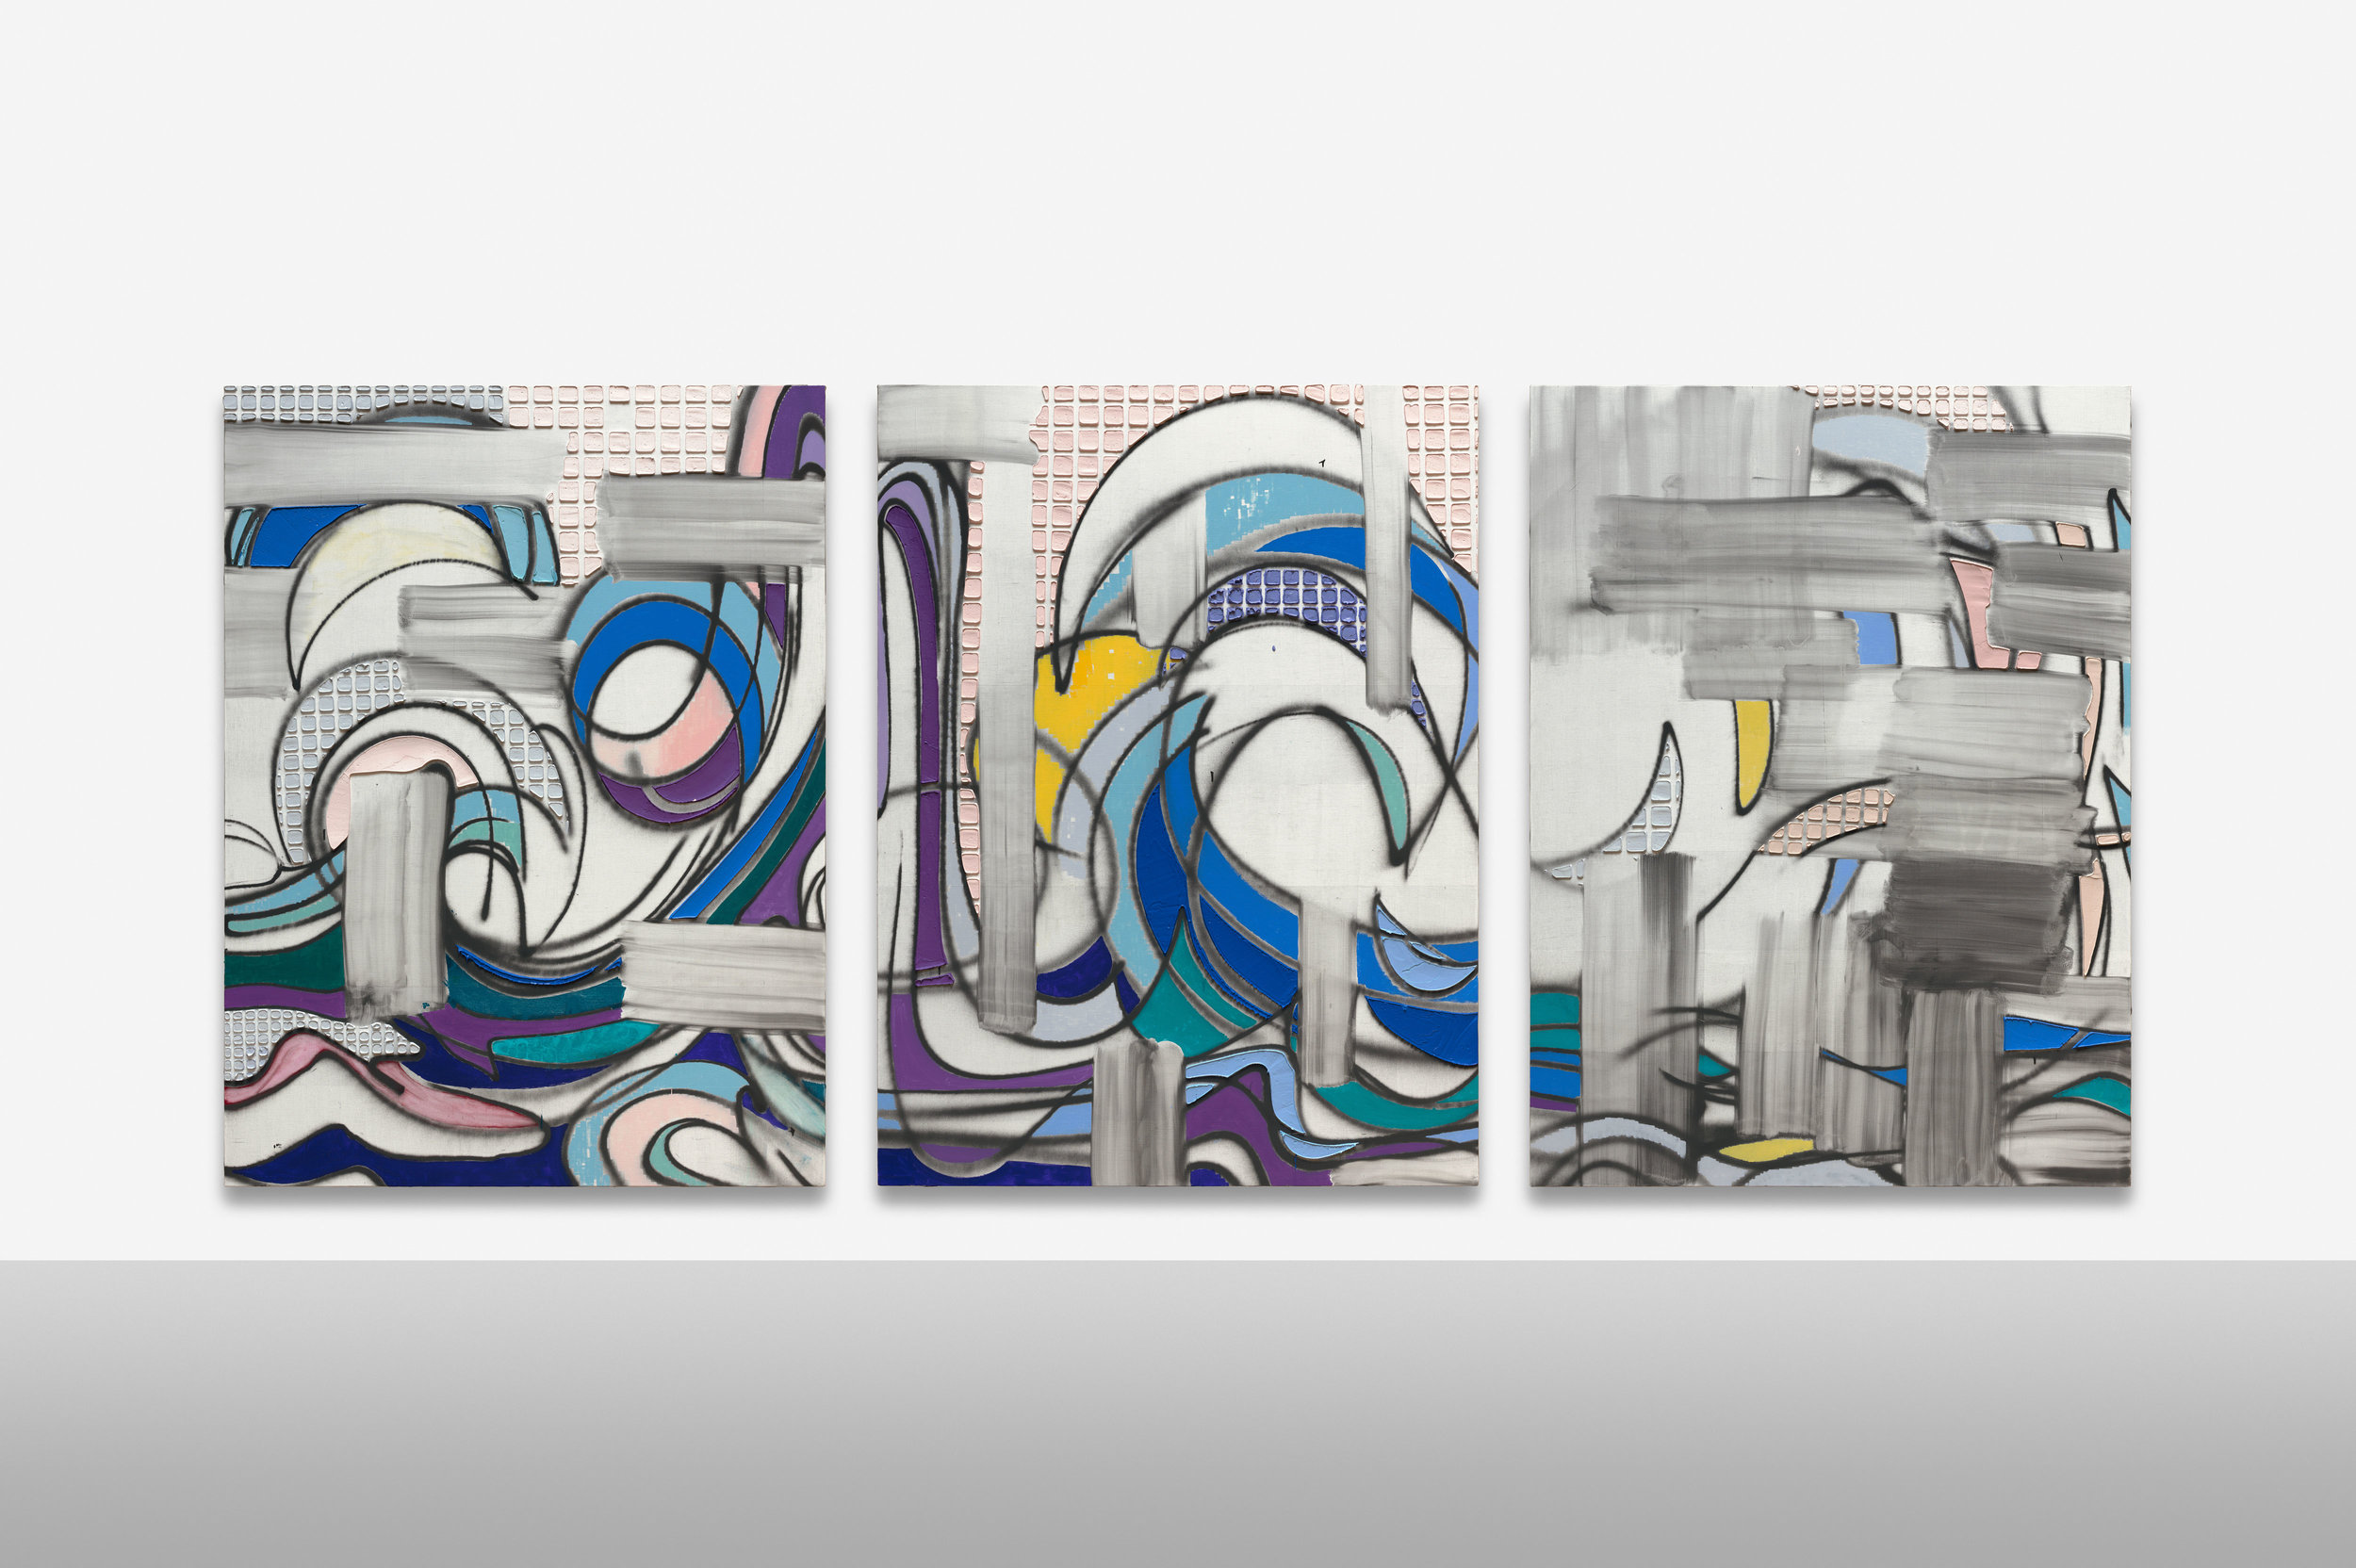 """KELTIE FERRIS. """"1WAVE1DAY1"""" (2018). OIL AND ACRYLIC ON CANVAS. TRIPTYCH; EACH PANEL: 80 X 60 IN. © KELTIE FERRIS. COURTESY OF THE ARTIST AND MITCHELL-INNES & NASH, NEW YORK."""